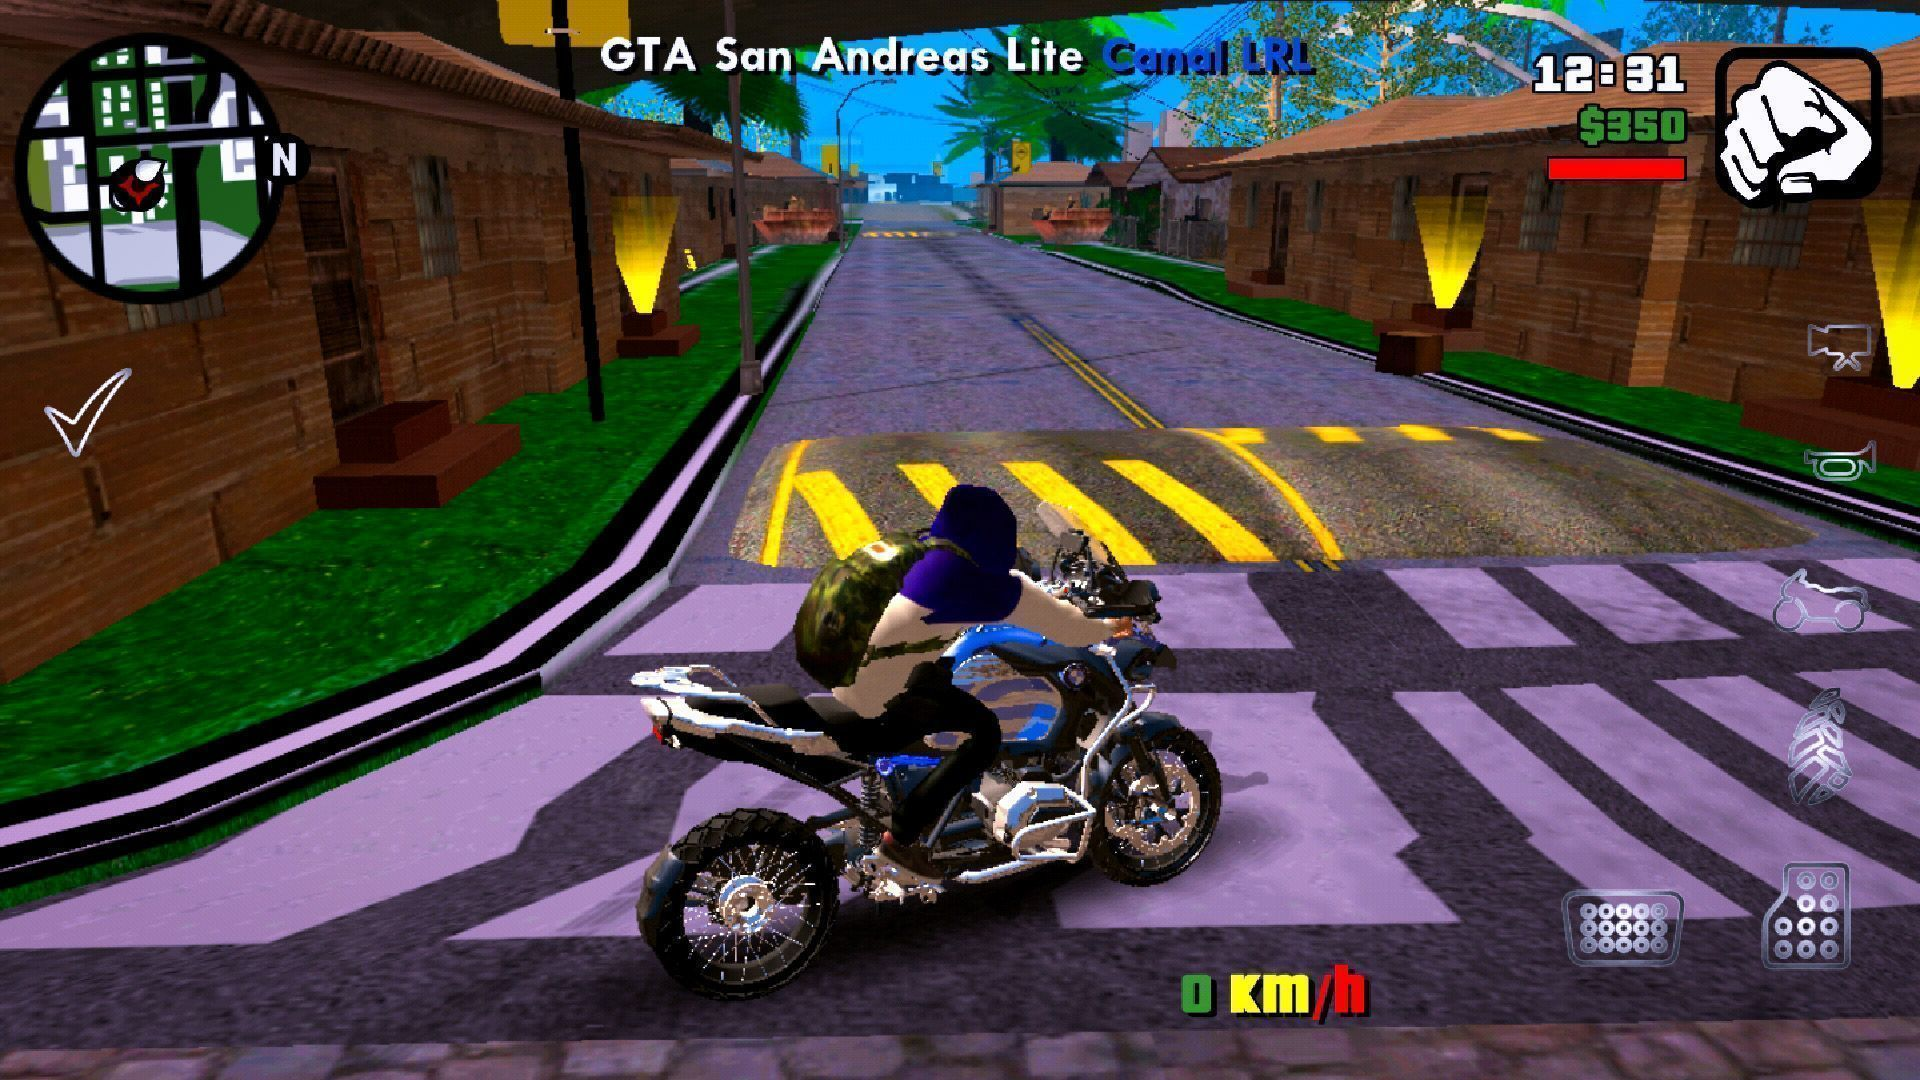 PSX 20190516 091838 - GTA Modificado para Android (565MB) apk+data